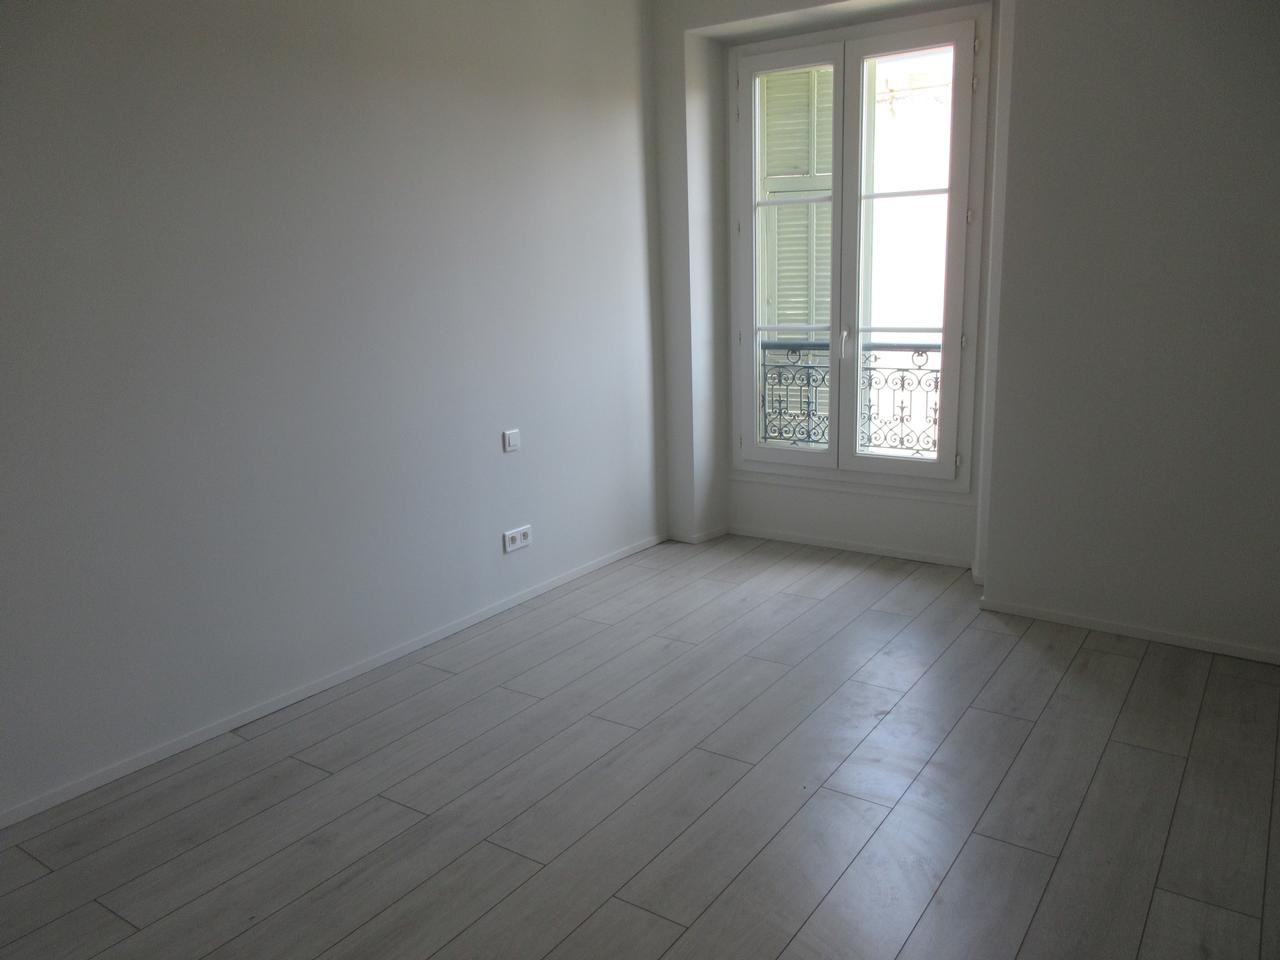 2 bedroom apartment in Bourgeois building in Carre d'Or